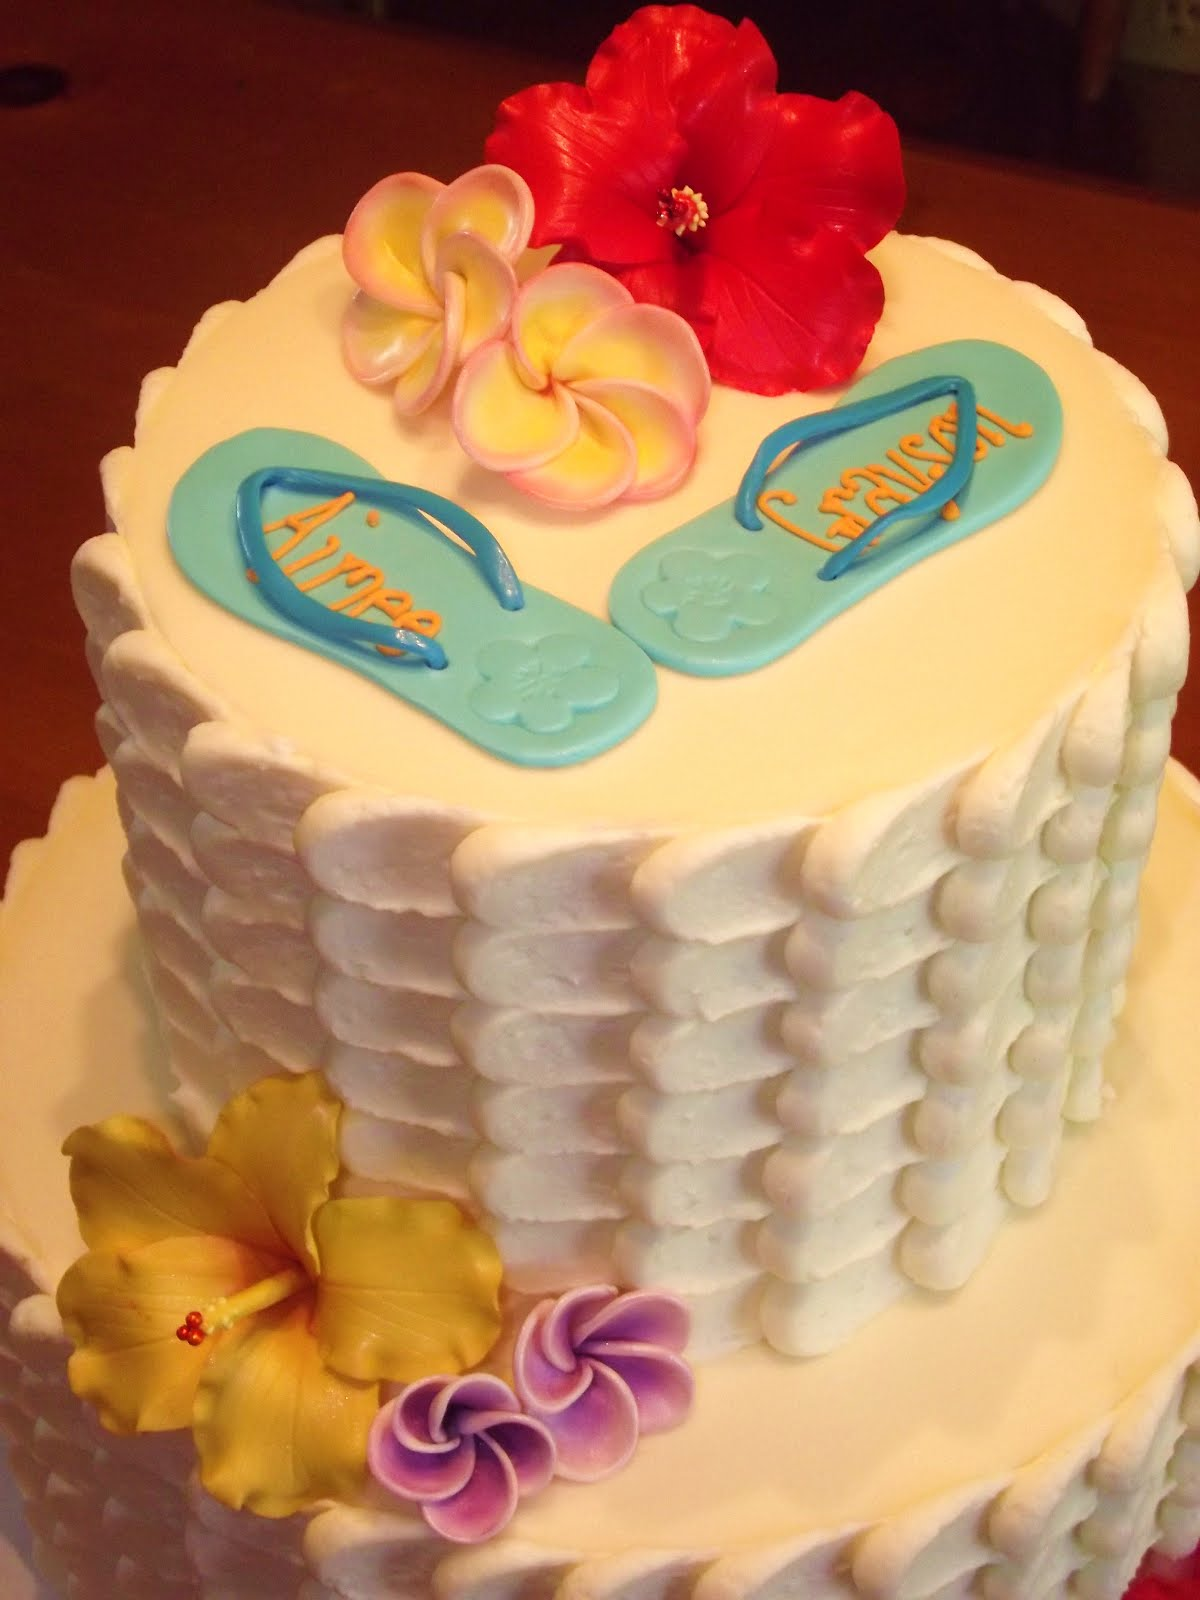 the cake flavor matched the tropical theme of the eventcoconut mango cake with a hinted mango buttercream it smelled so yummy